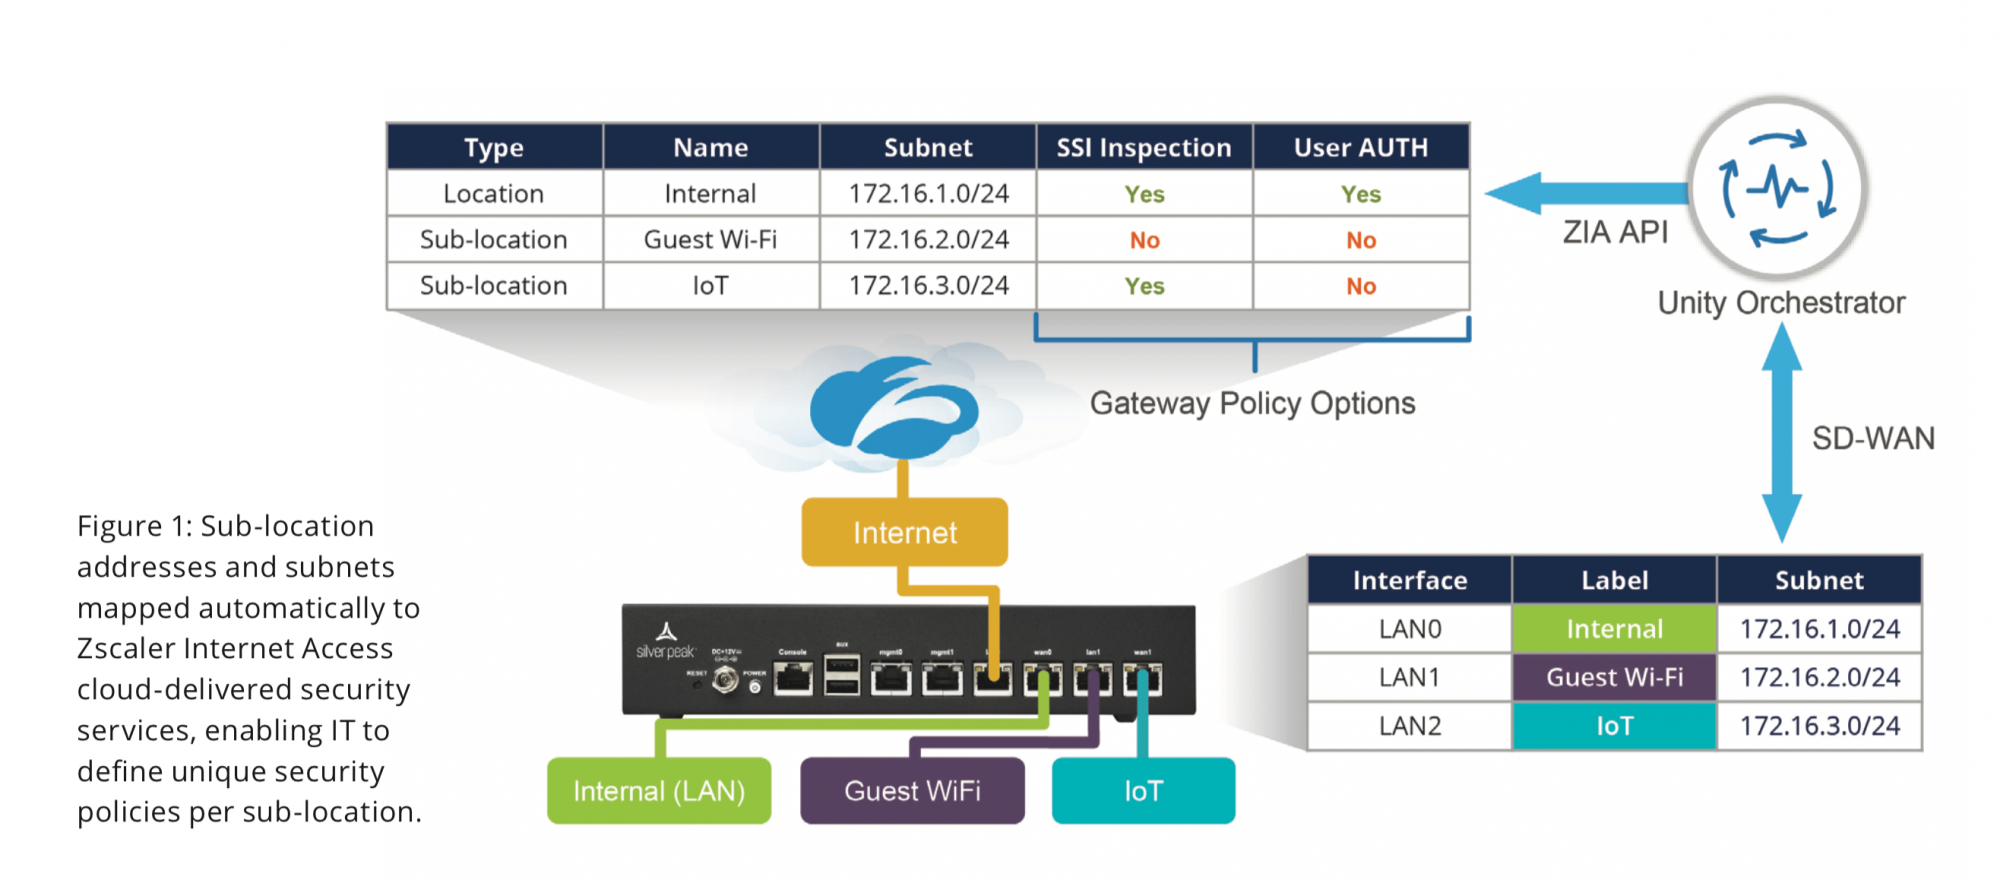 Figure 1: Sub-location addresses and subnets mapped automatically to Zscaler Internet Access cloud-delivered security services, enabling IT to define unique security policies per sub-location.